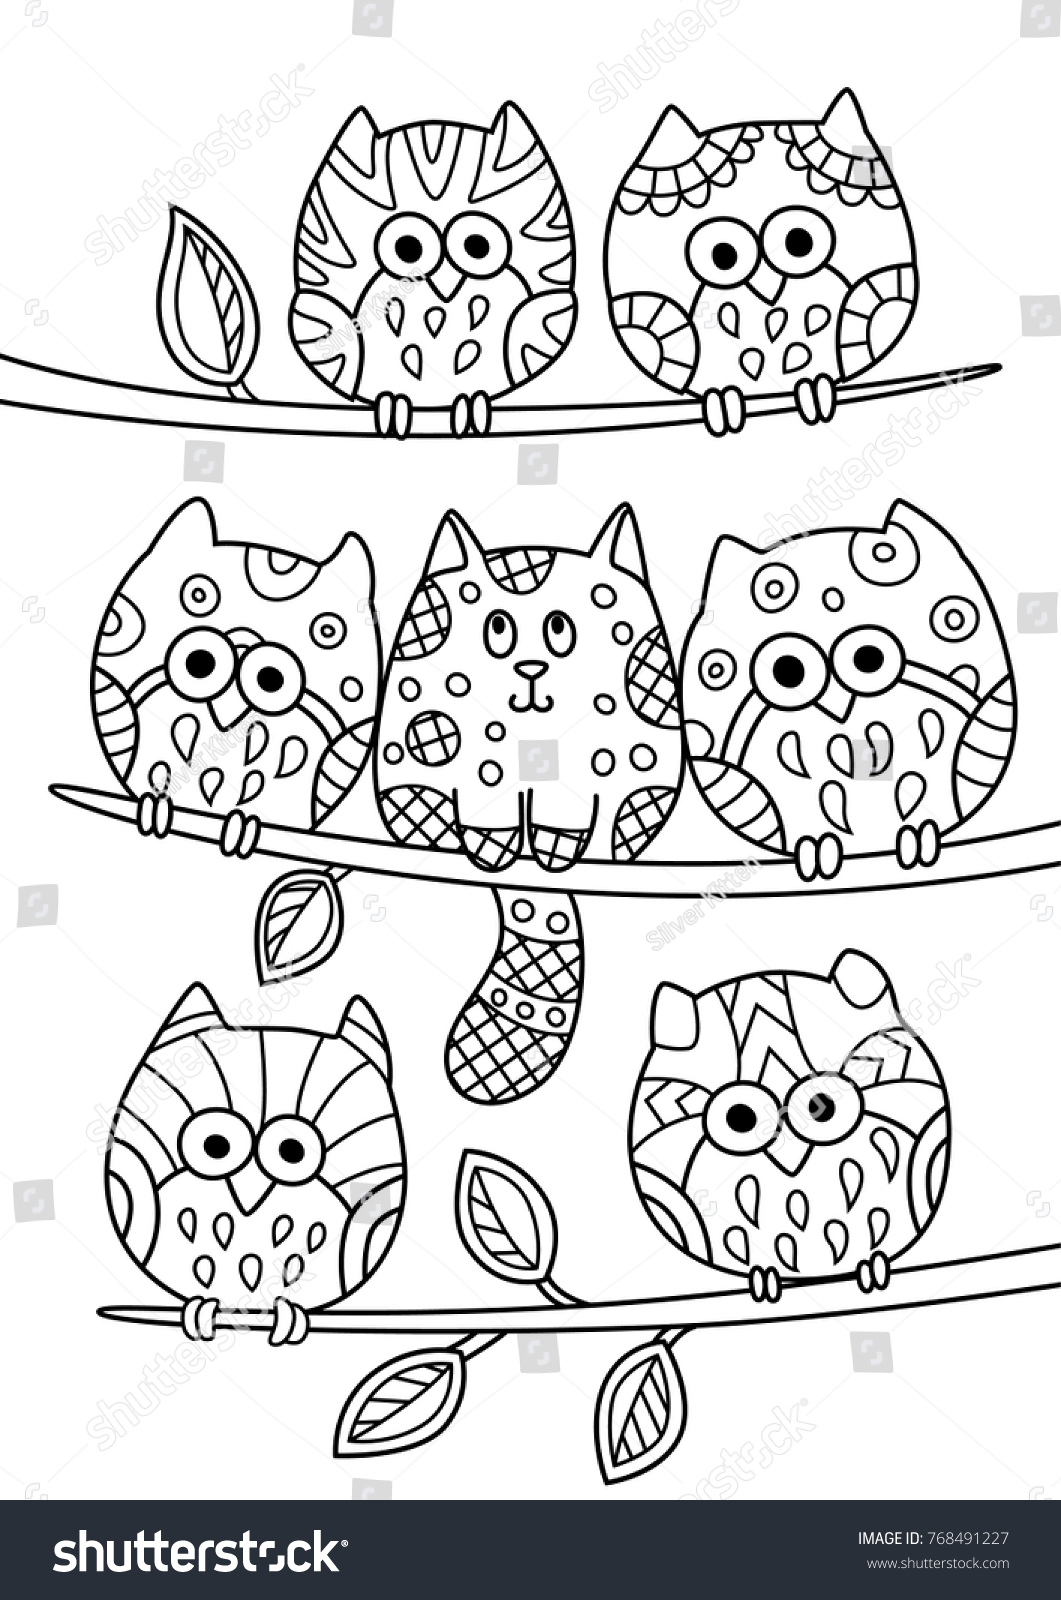 stock vector outlined doodle anti stress coloring cute cat hiding among the owls coloring book page for adults